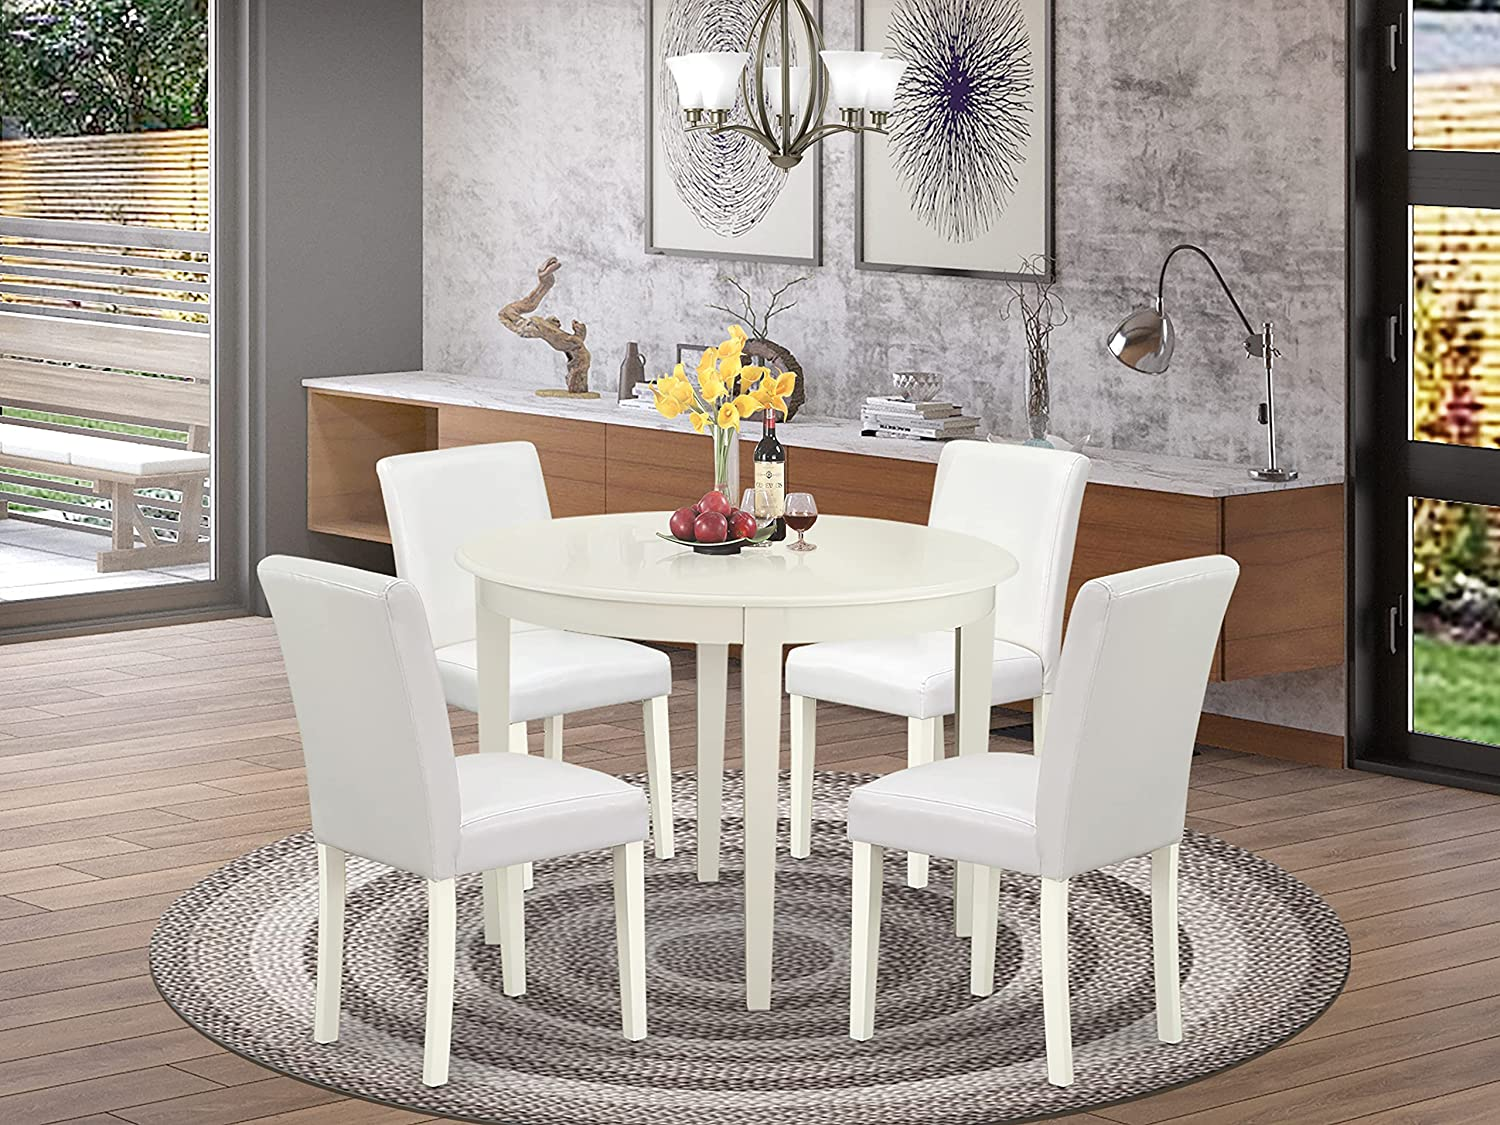 East West Furniture Dining Set 5 Pieces - White PU Leather Kitchen Parson Chairs - Linen White Finish 4 legs Hardwood Round Dinner Table and Frame